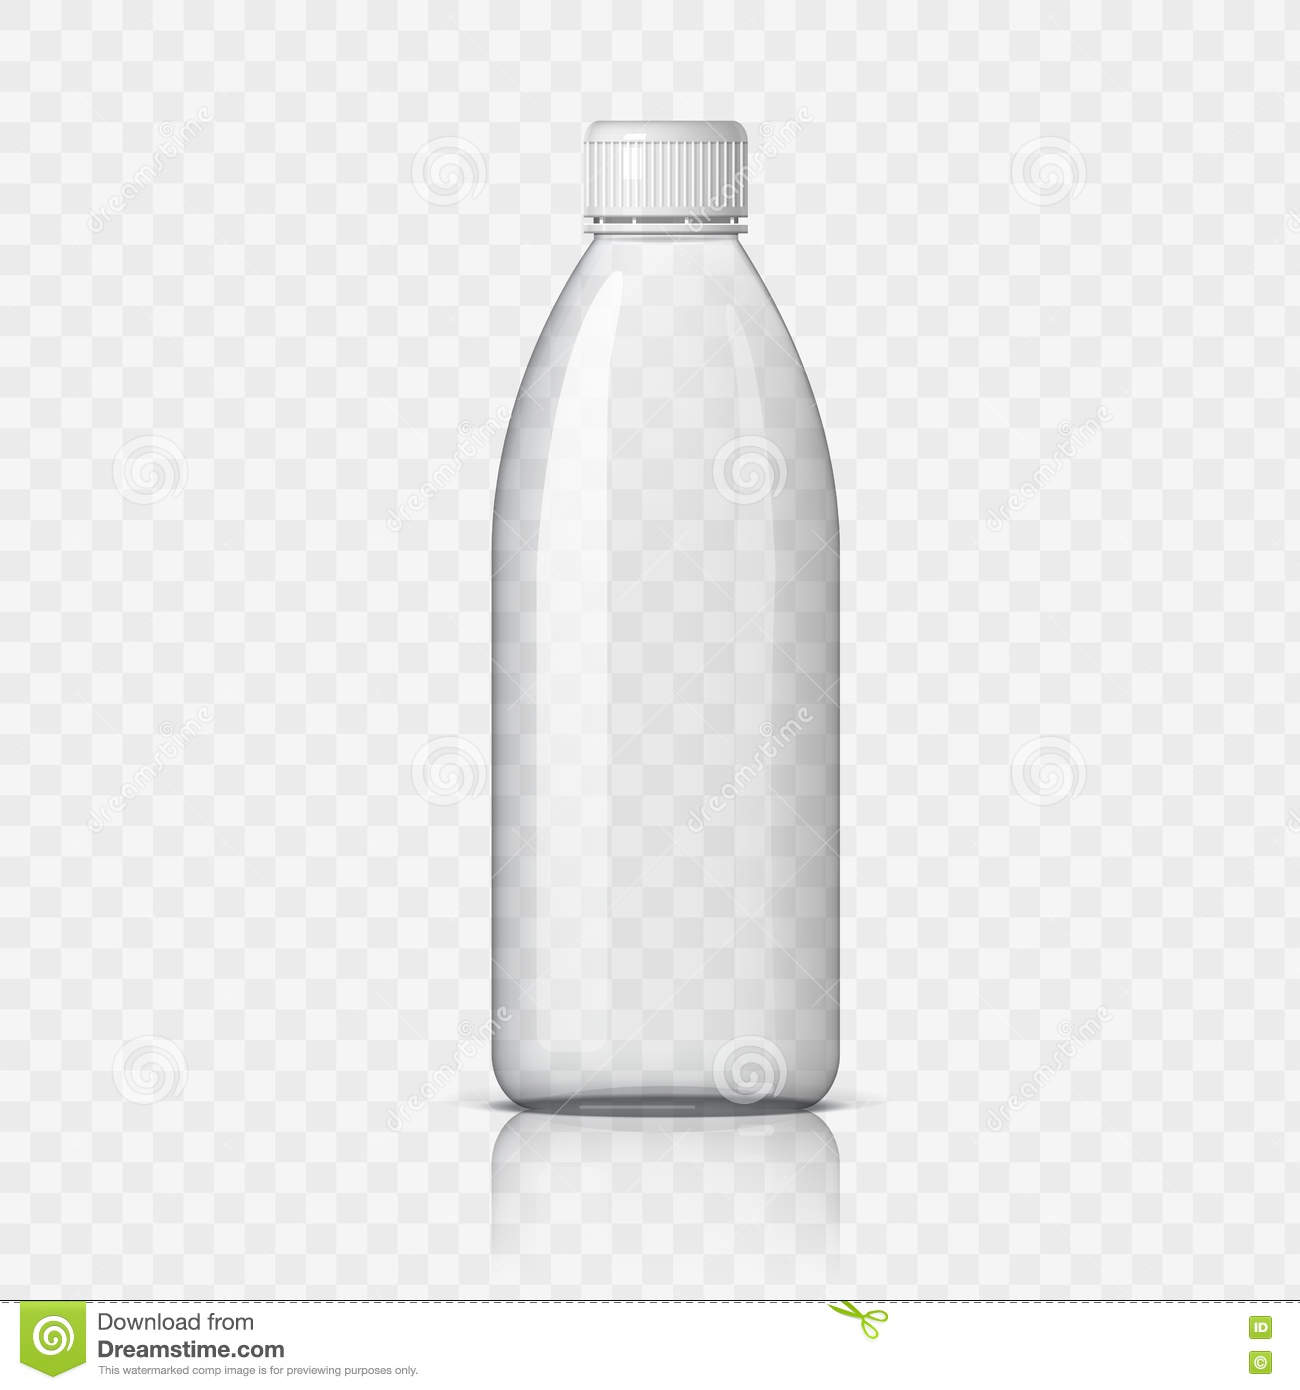 Realistic Plastic Bottle For Water. Stock Vector - Image ...